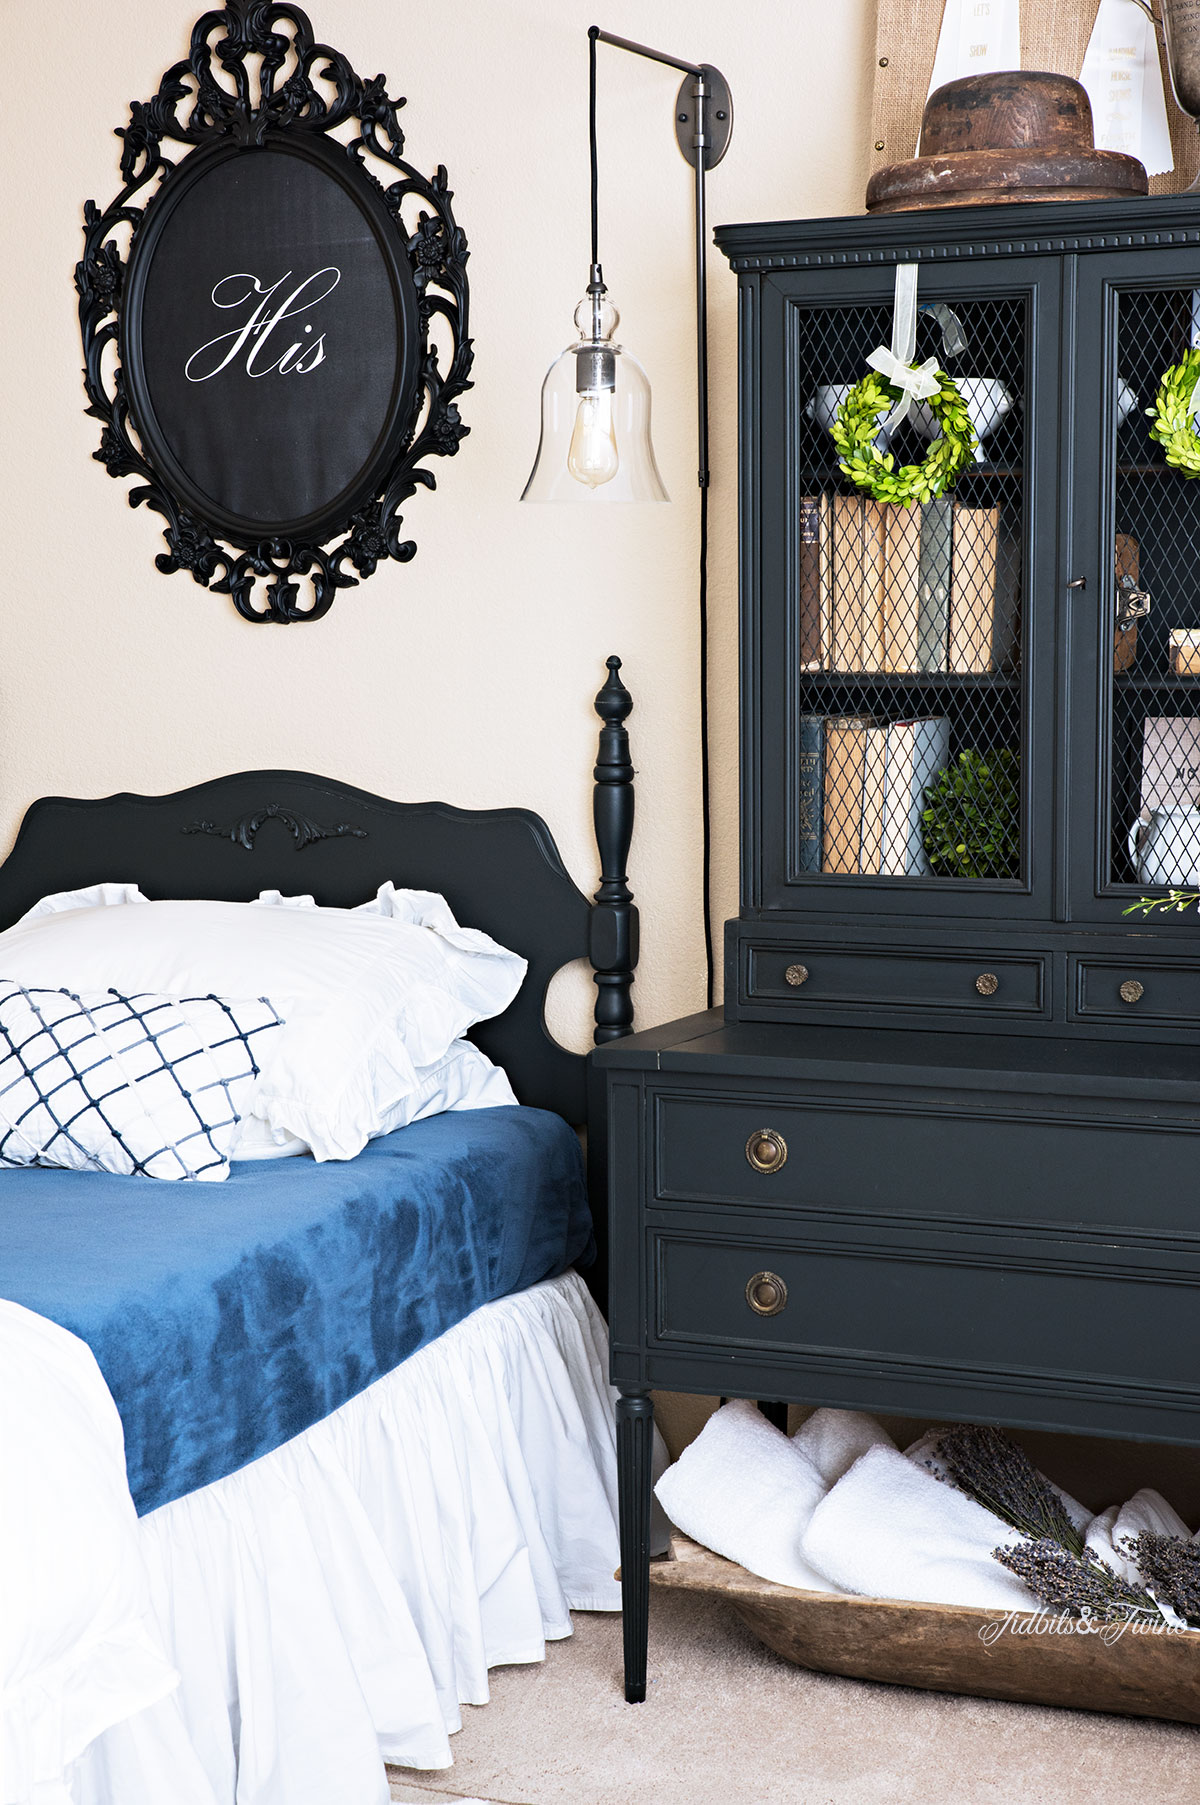 Tidbits&Twine Guest Bedroom with His and Hers Signs